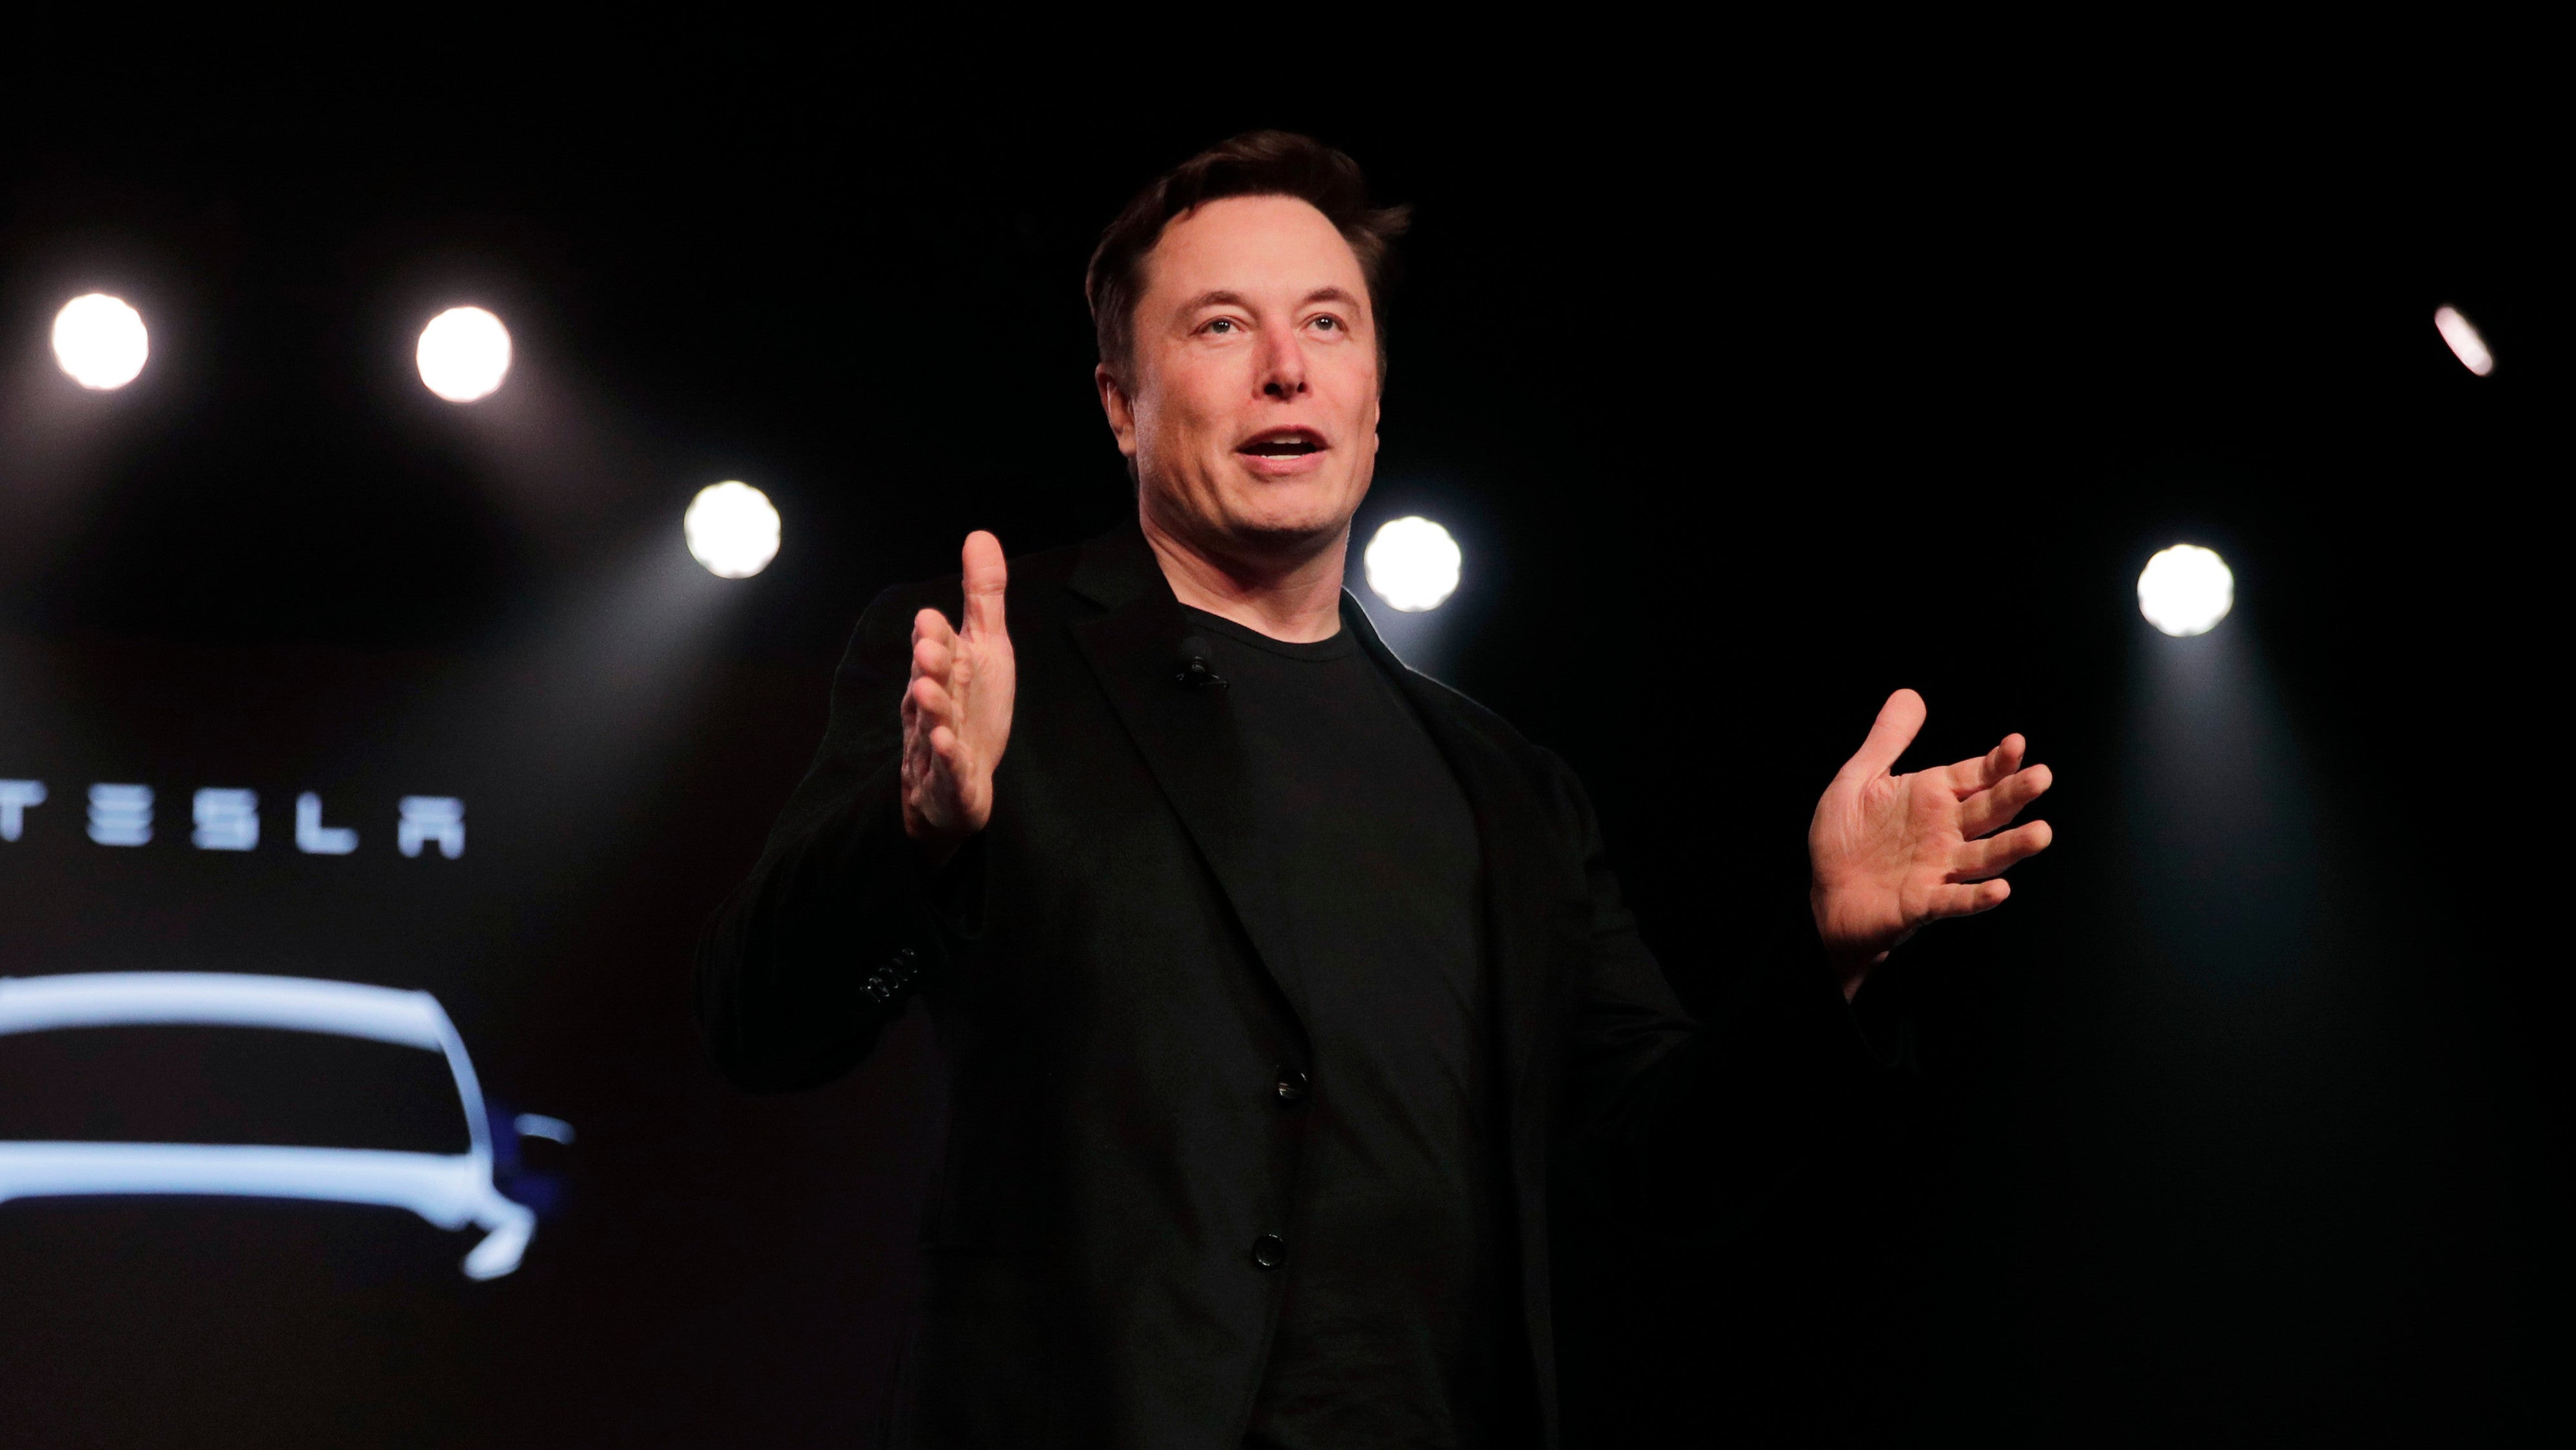 Report: Brain Genius Elon Musk Got Rolled By World's Most Obvious Grifter After 'Pedo Guy' Tweets